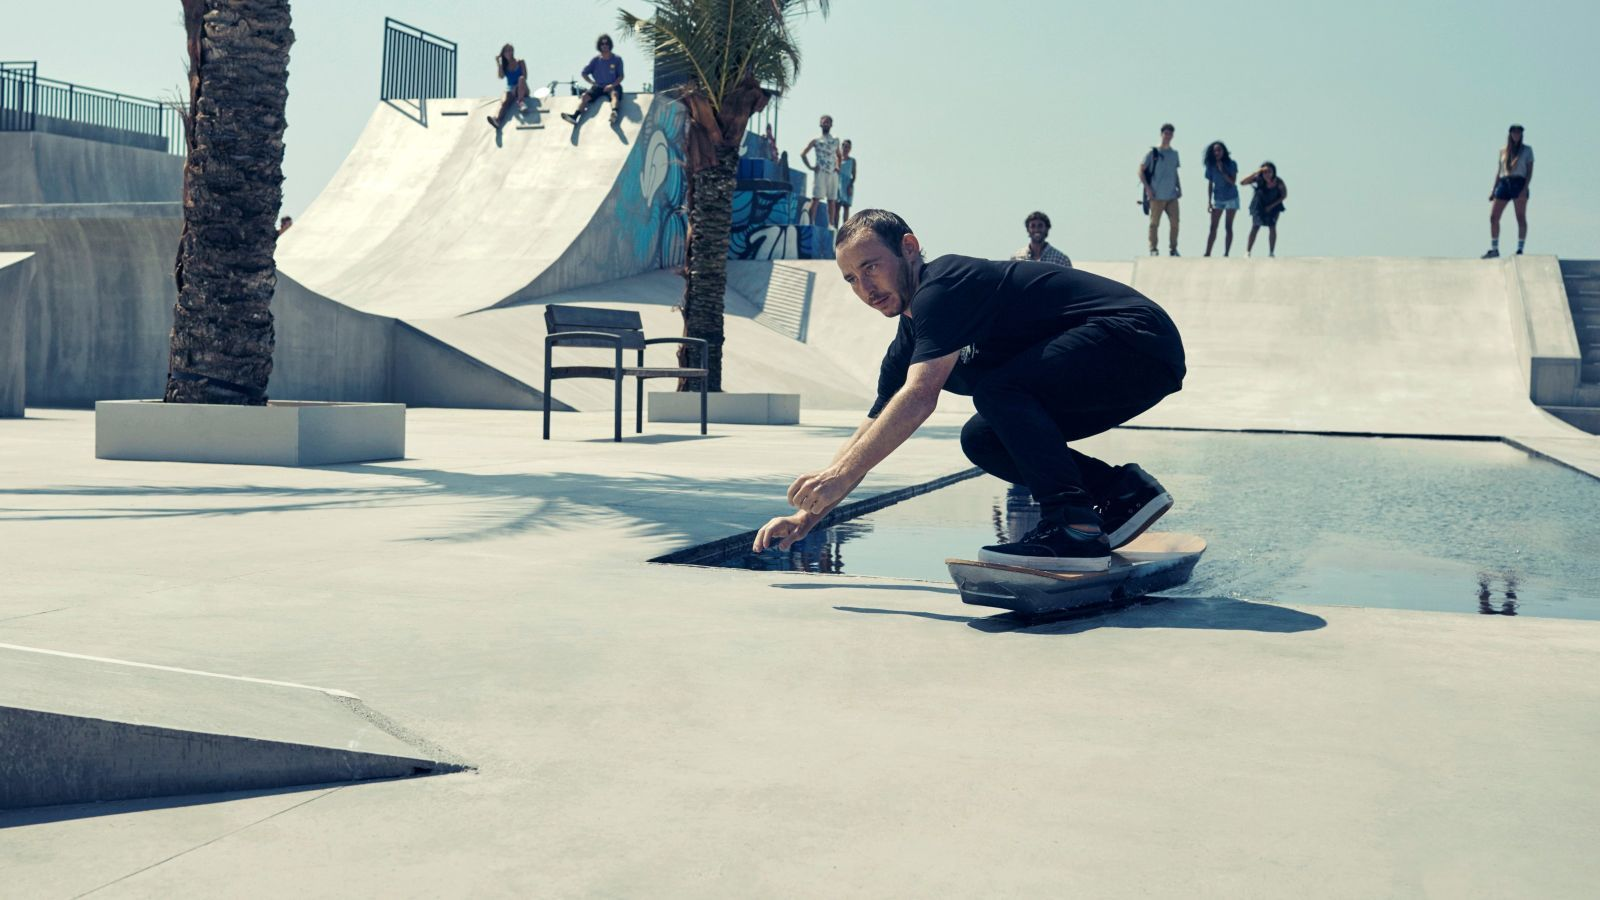 Lexus Hoverboard back to the future